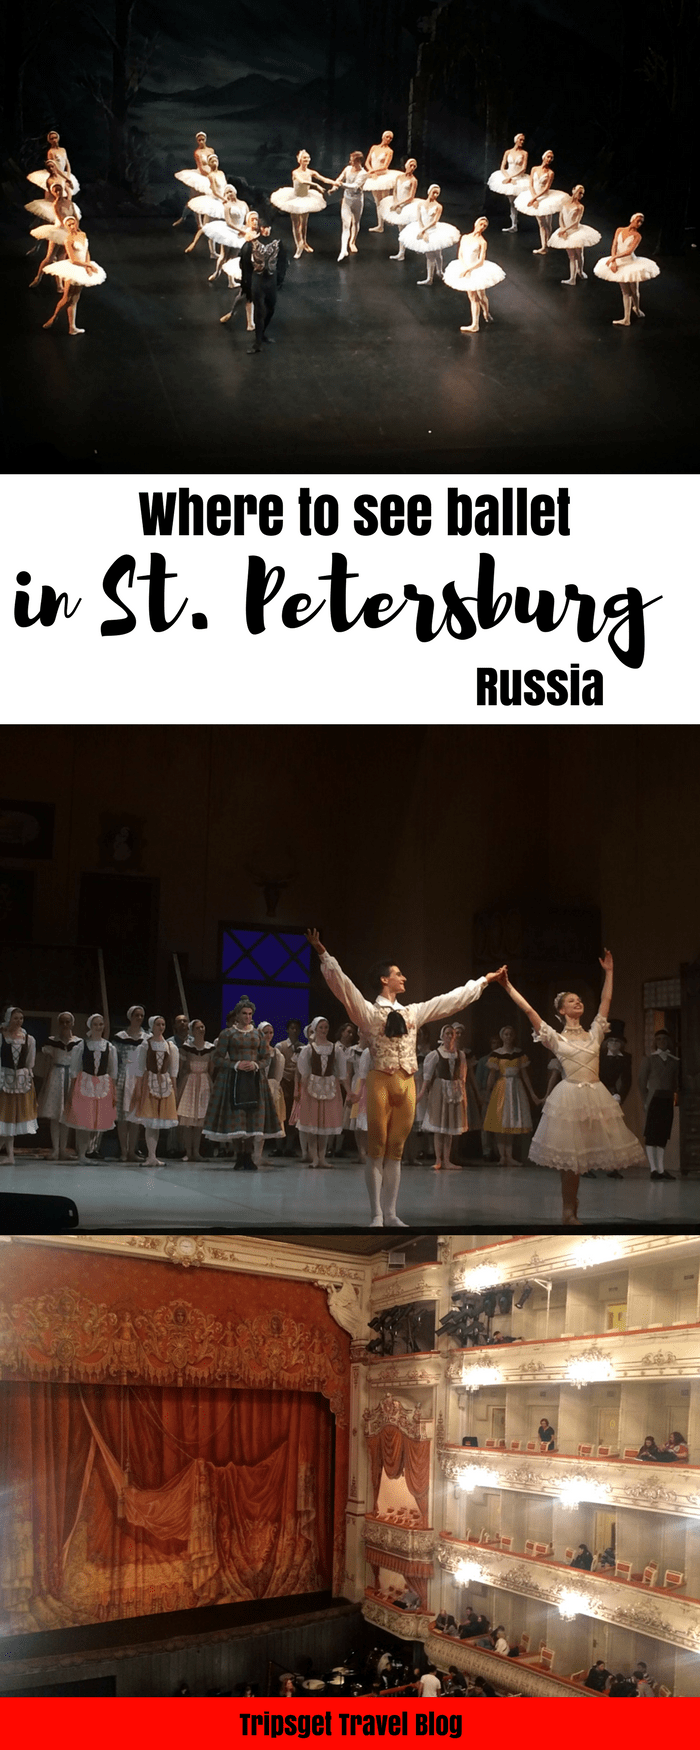 St. Petersburg ballet - where to see ballet in Russia - Swan Lake, Nutcracker, Giselle, La Fille Mal Gardee, Flame of Paris, Boheme